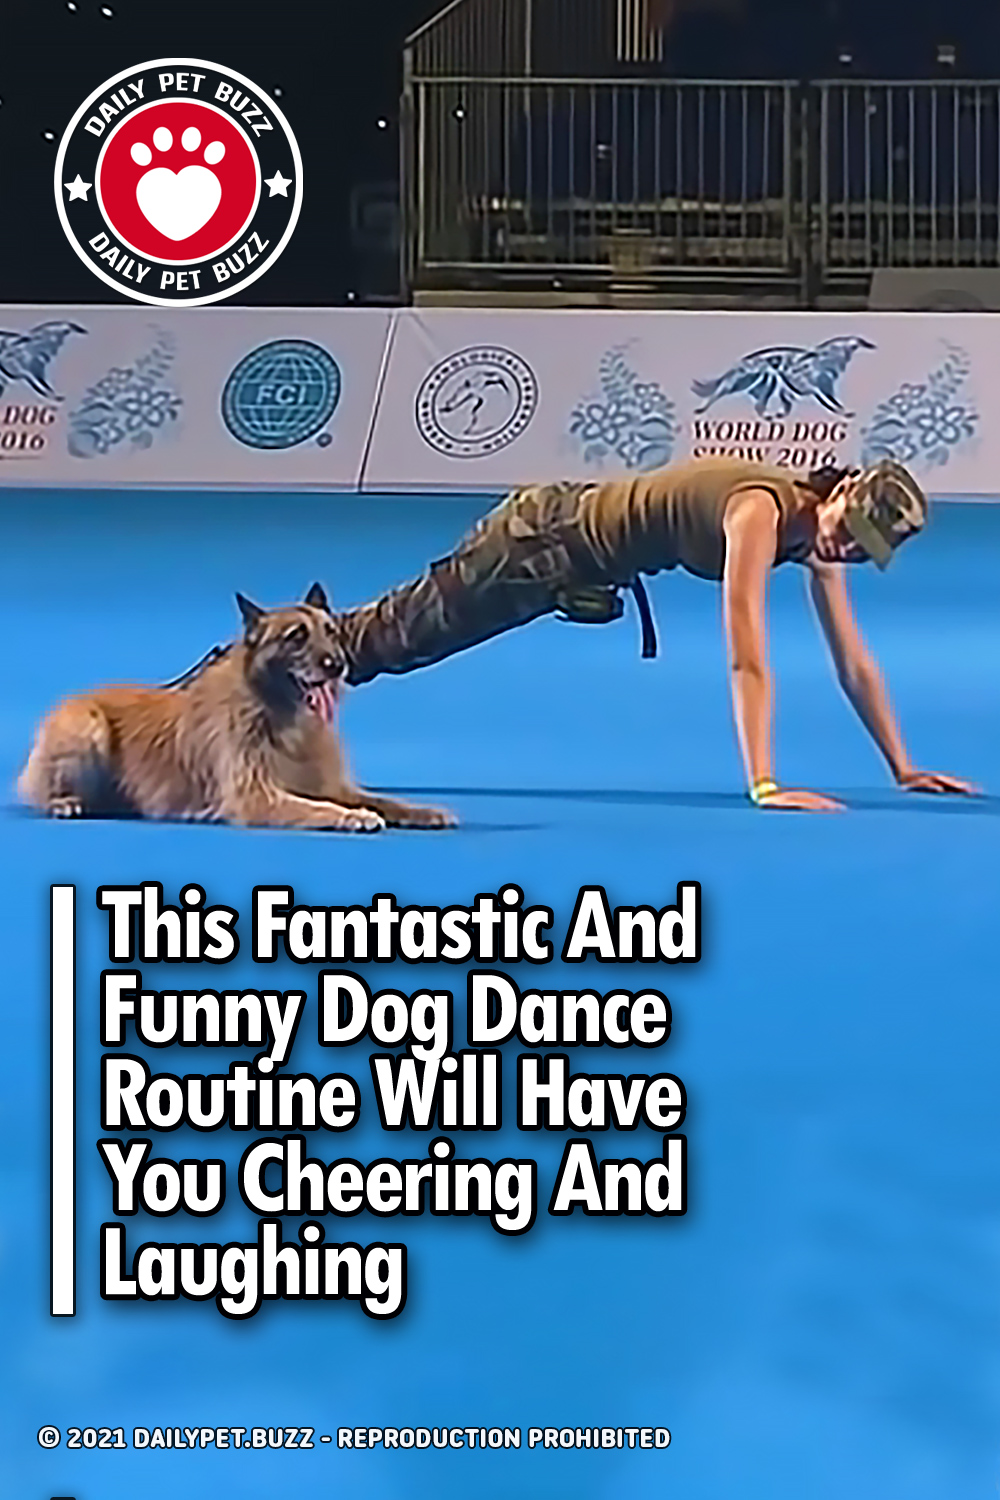 This Fantastic And Funny Dog Dance Routine Will Have You Cheering And Laughing